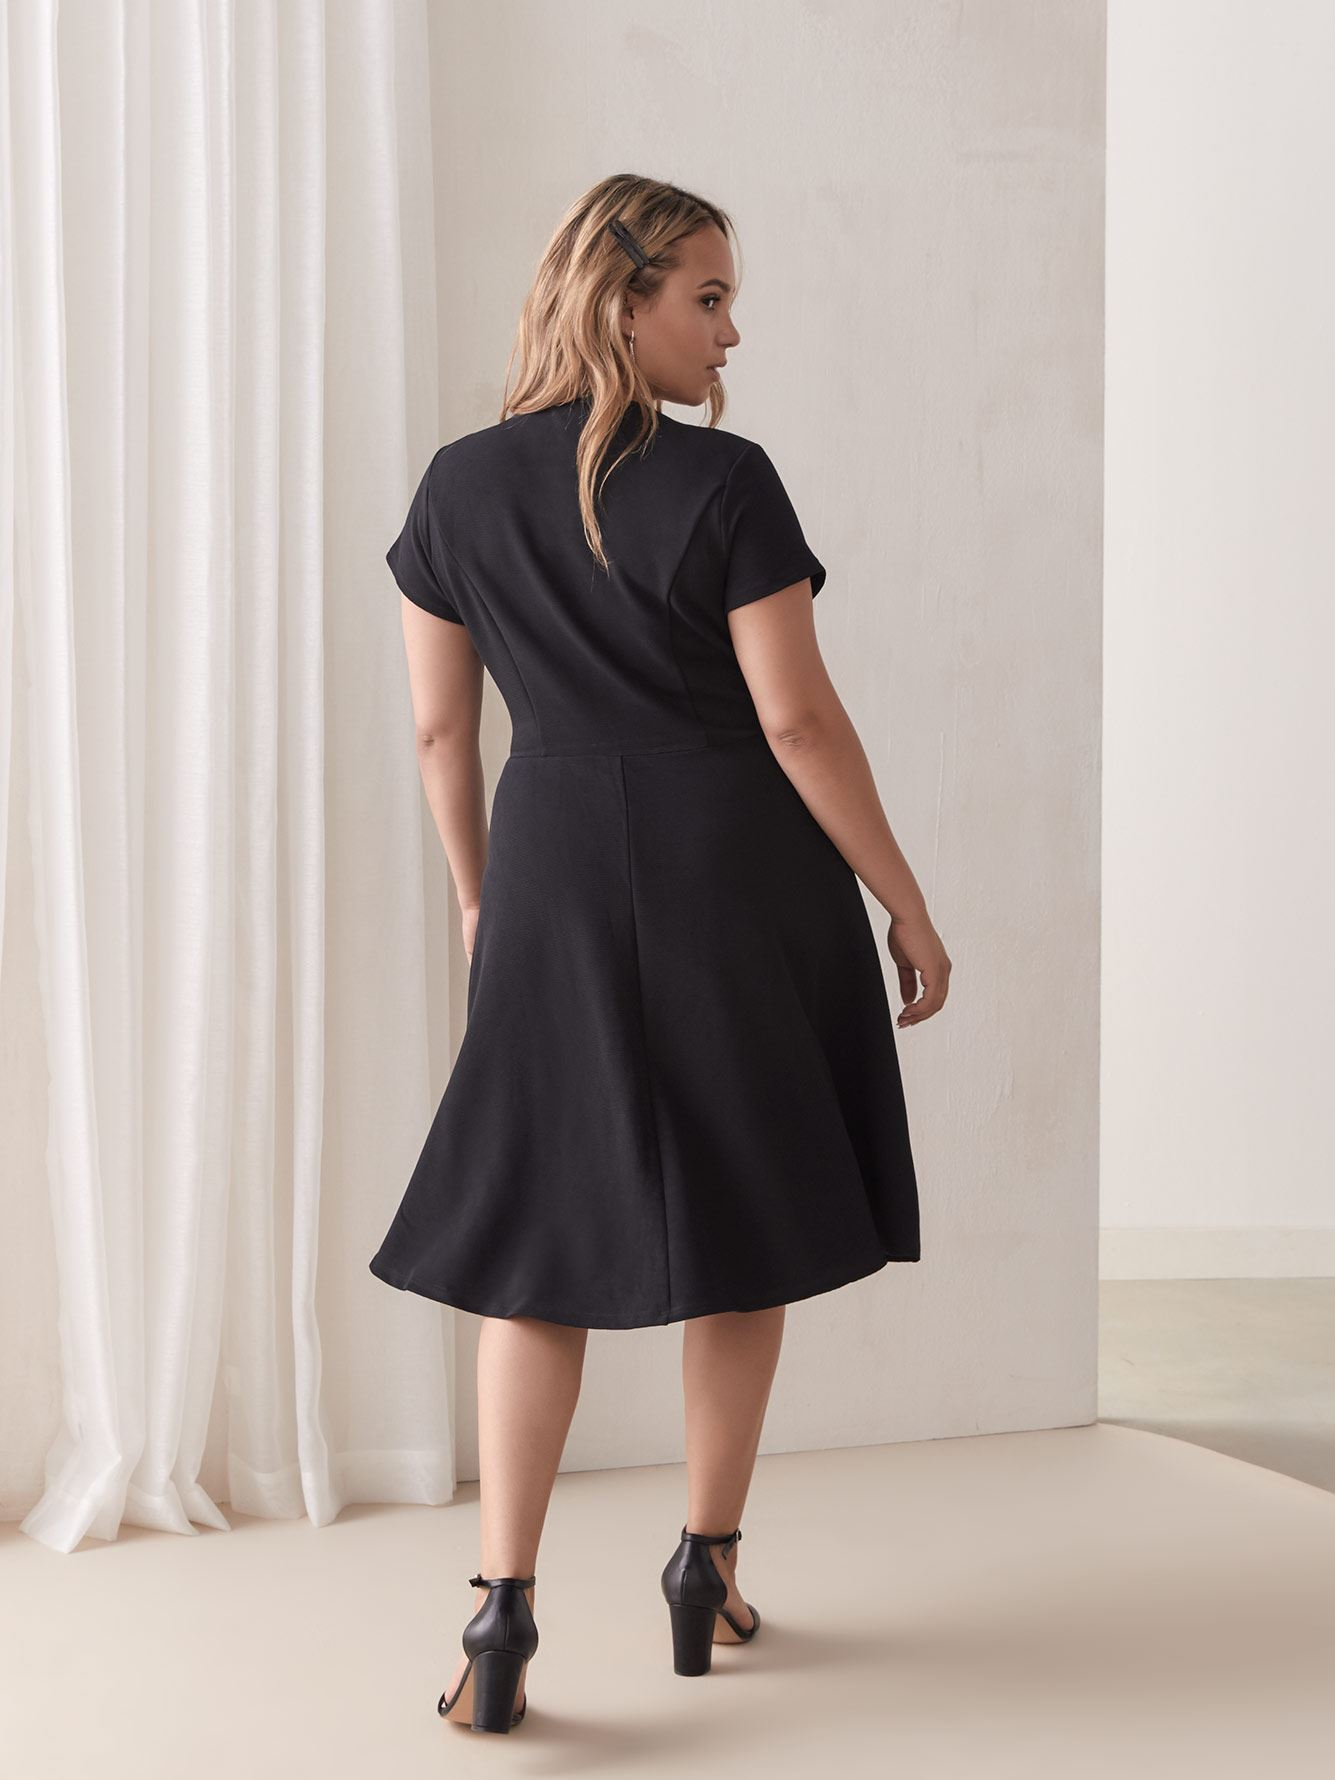 Low Cut Dress with Knot - City Chic